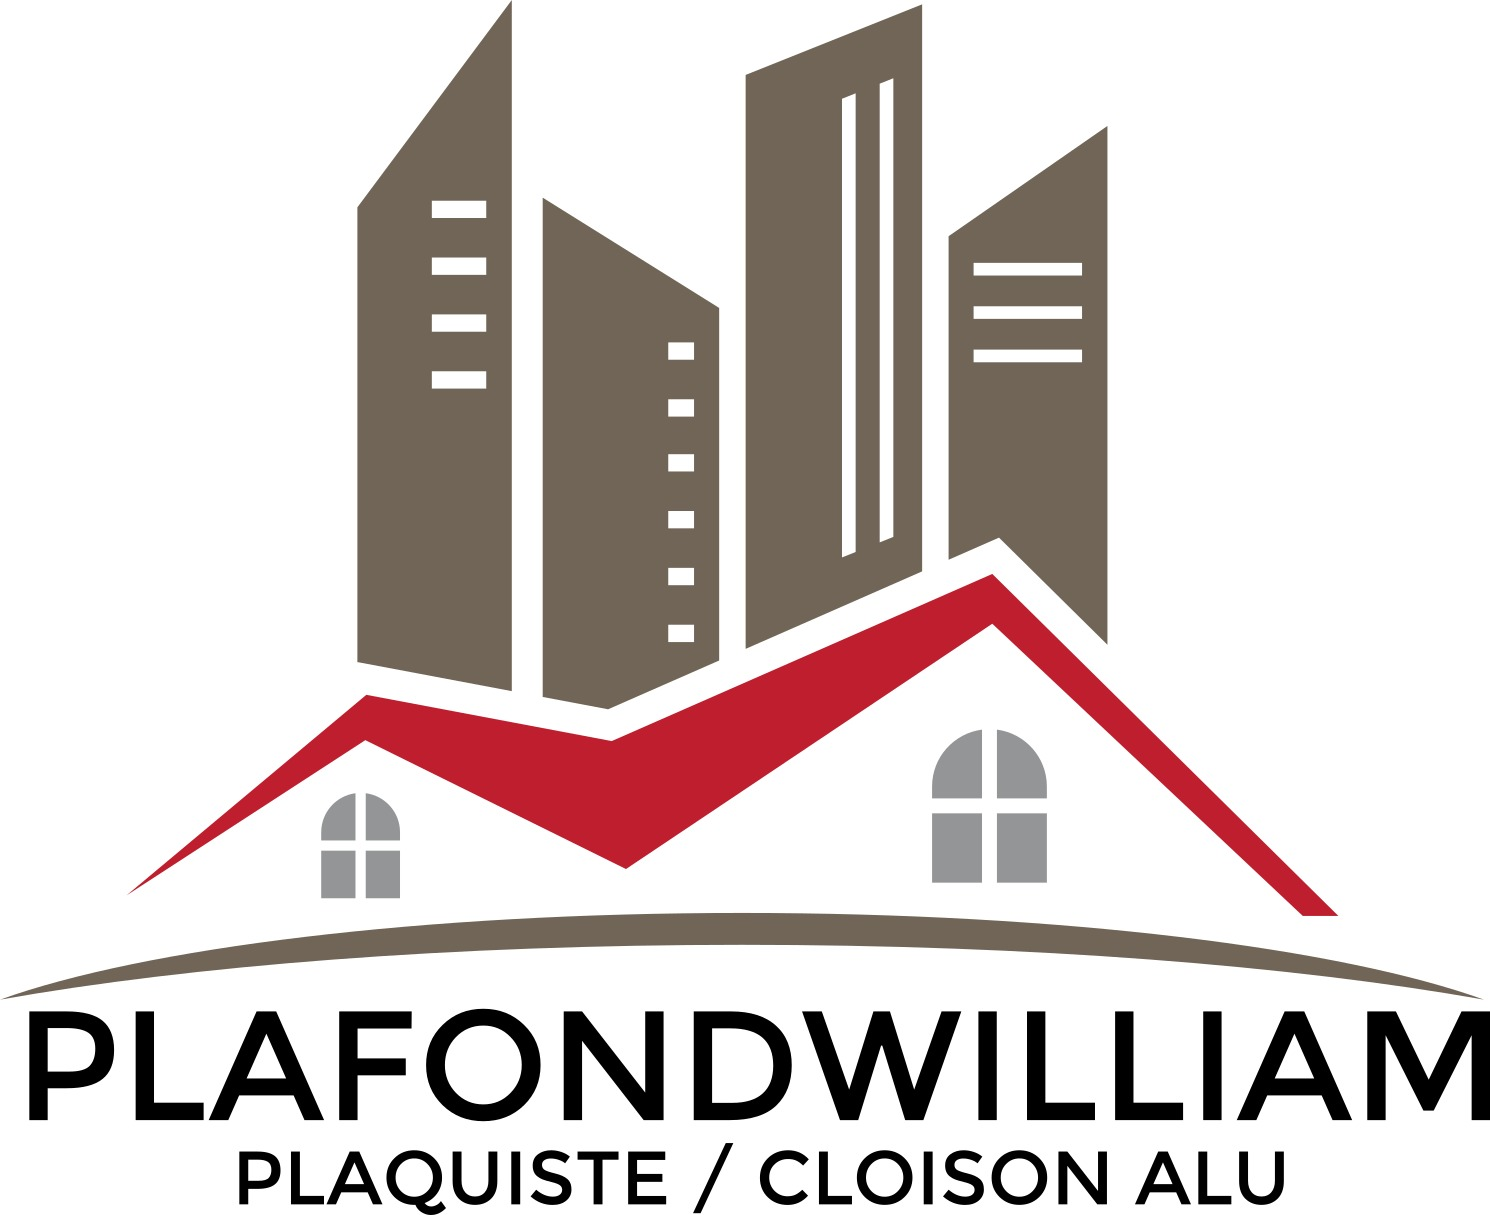 Logo de PLAFONDWILLIAM, société de travaux en Construction & Rénovation de cloisons